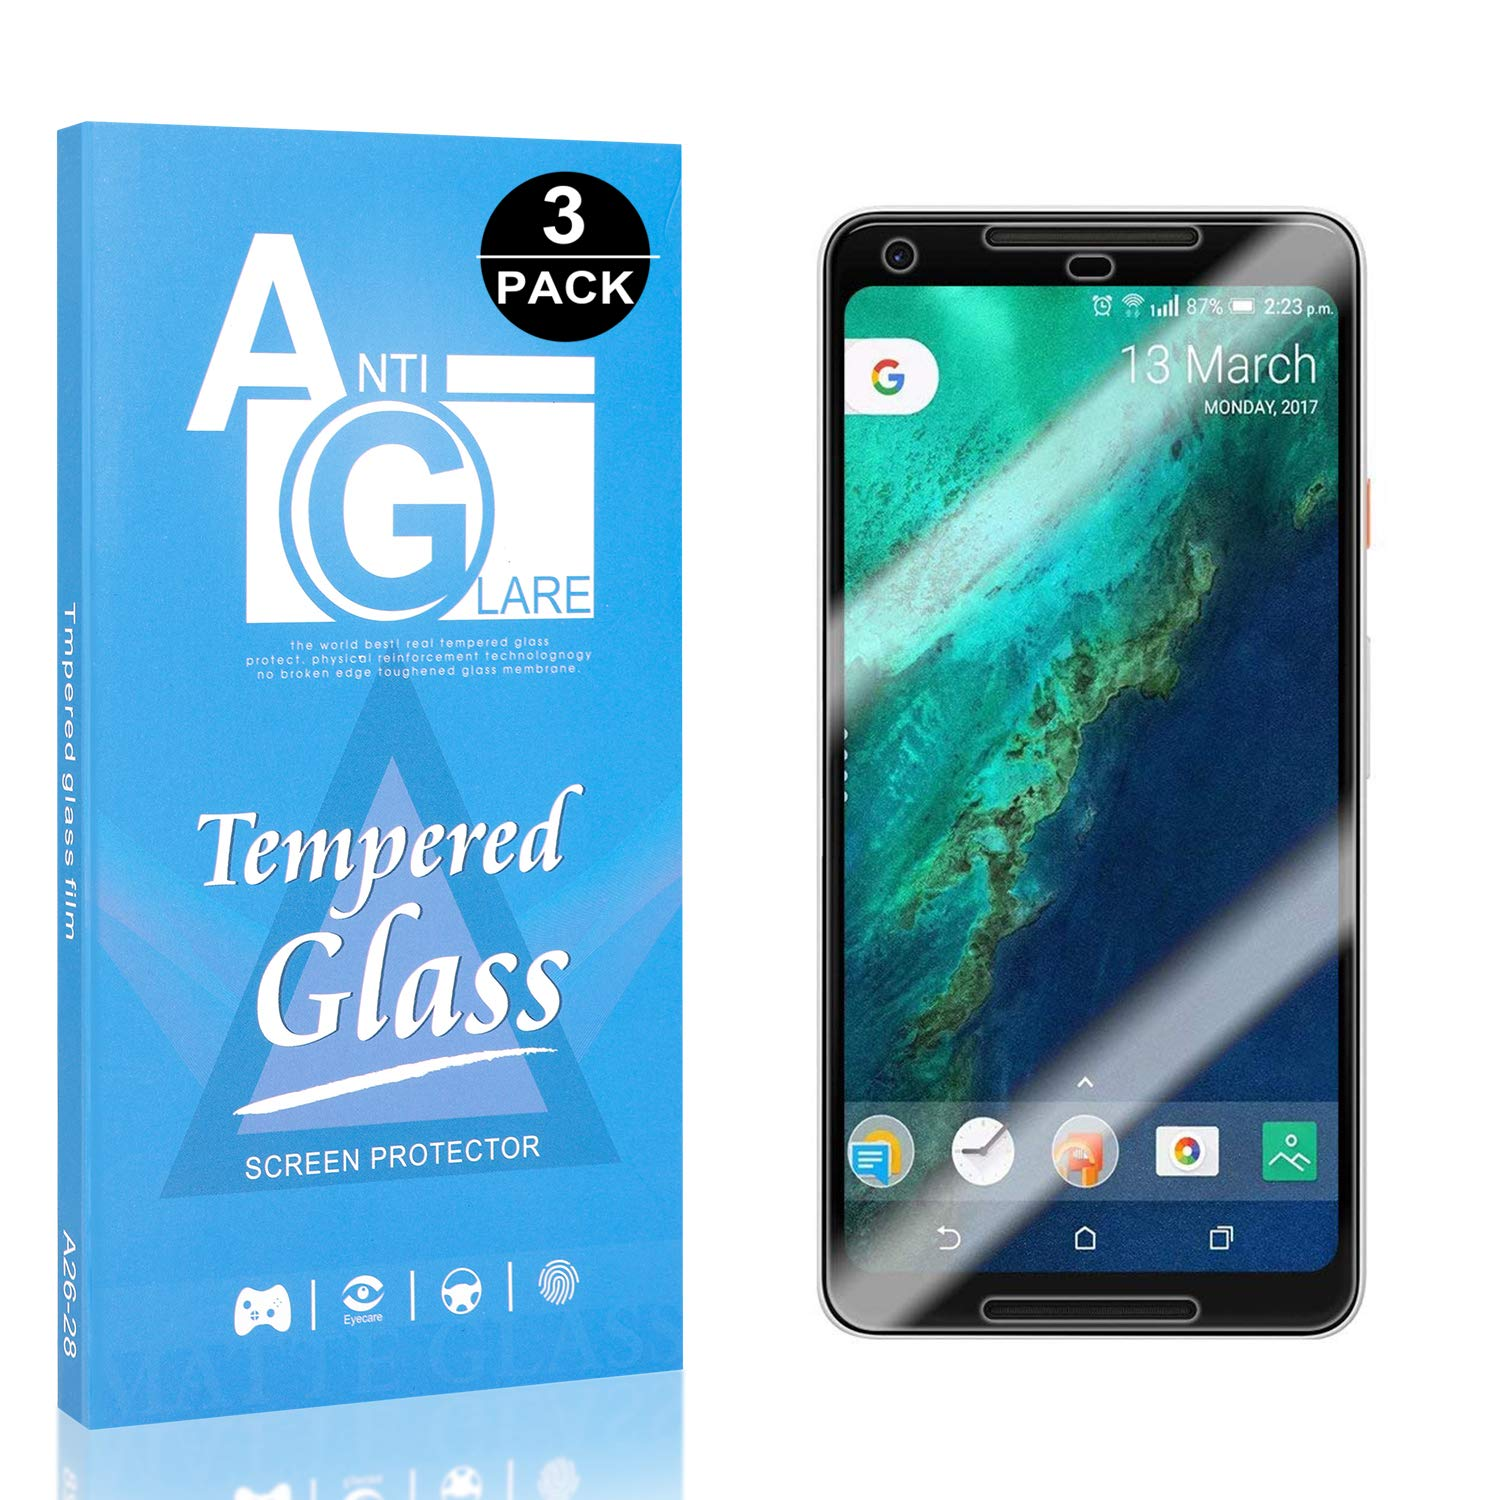 3 Pack Screen Protector Compatible with Google Pixel 2 XL, UNEXTATI 3D Touch DoubleDefence Technology, 9H Hardness HD Clear Tempered Glass Film